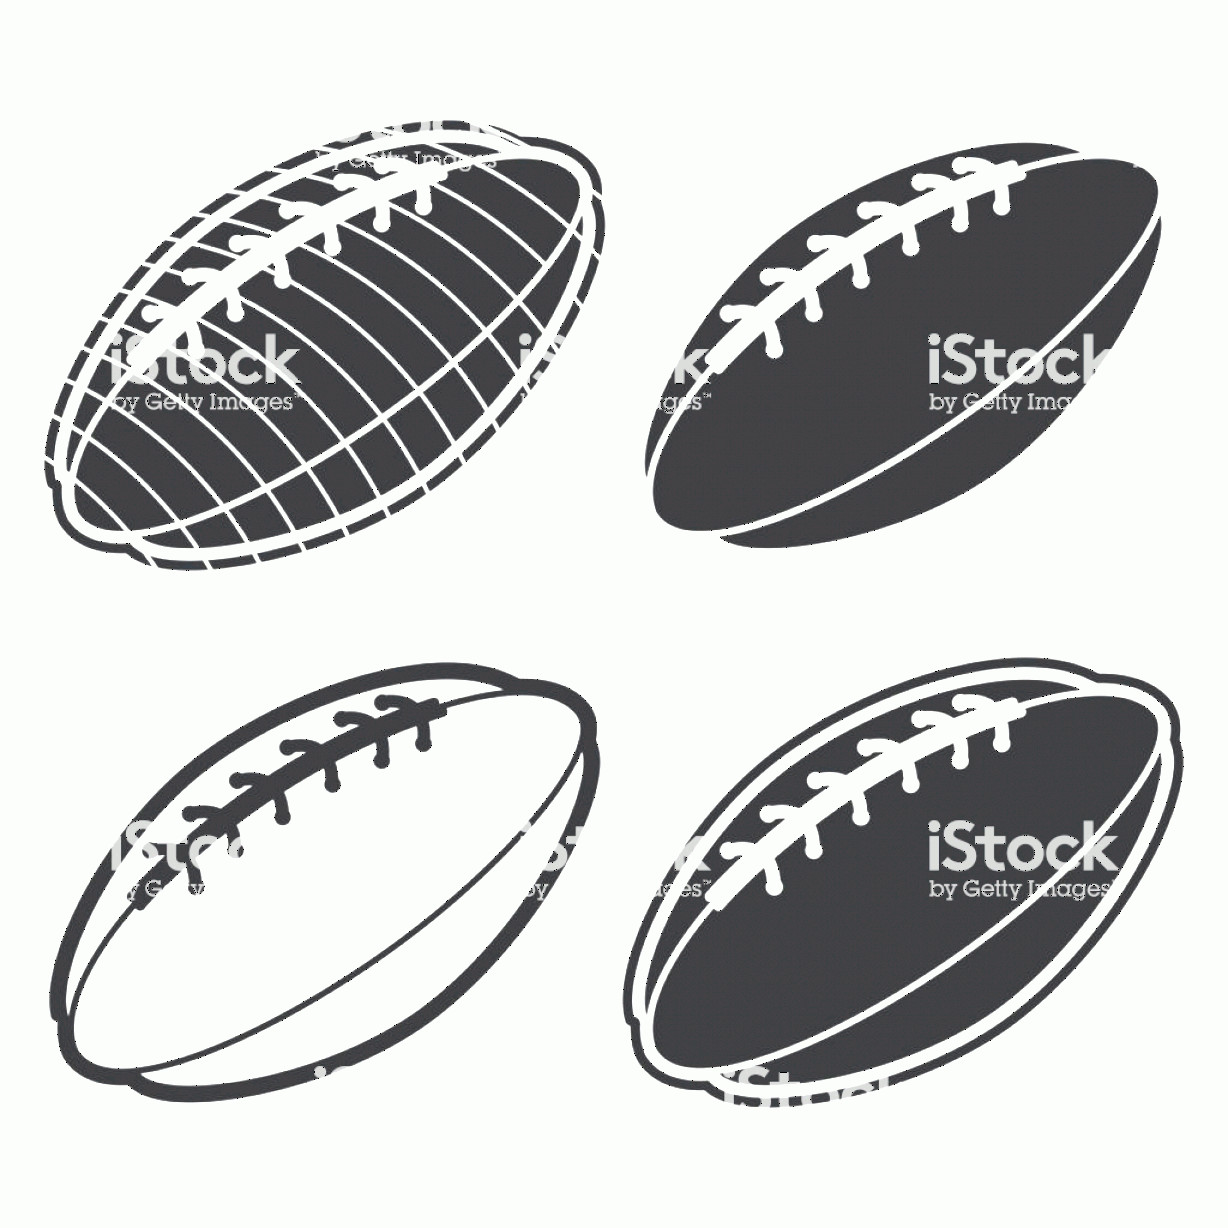 Football Laces Vector Silhouette: American Football Ball Black Silhouette Vector Icons Set Isolated On A White Gm